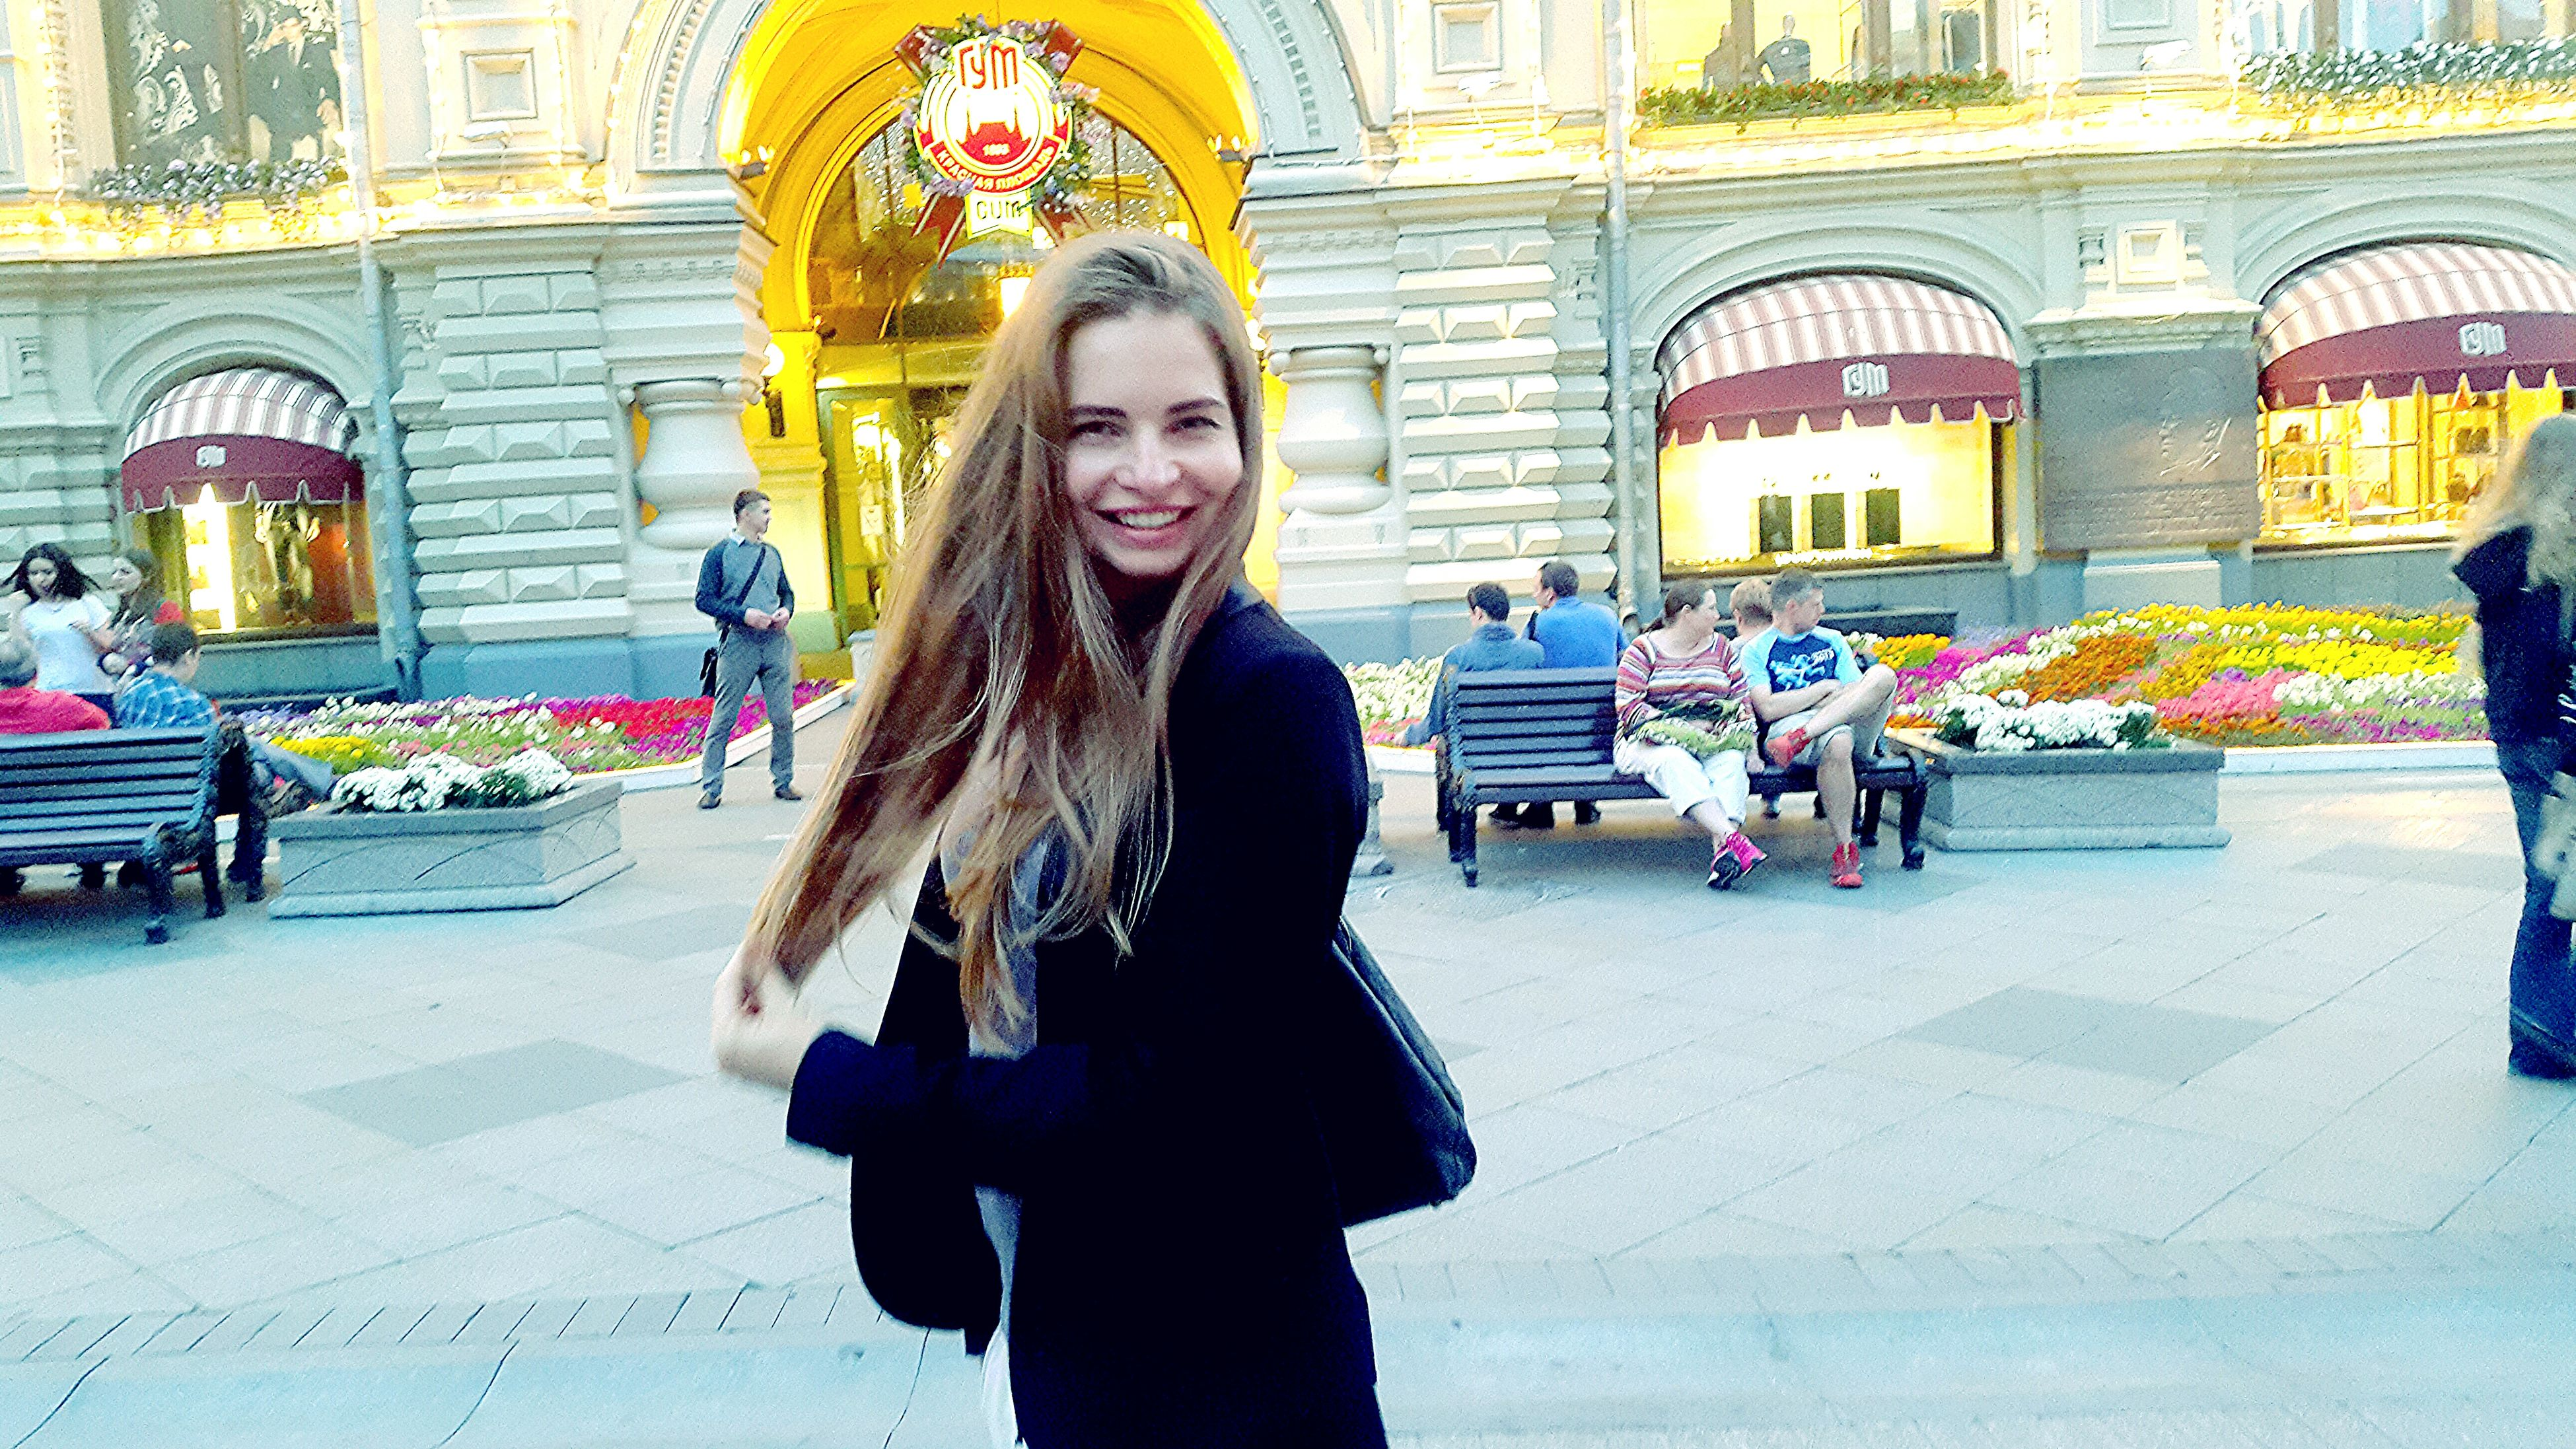 lifestyles, building exterior, young adult, young women, leisure activity, architecture, built structure, front view, person, long hair, looking at camera, casual clothing, portrait, standing, street, city, sunglasses